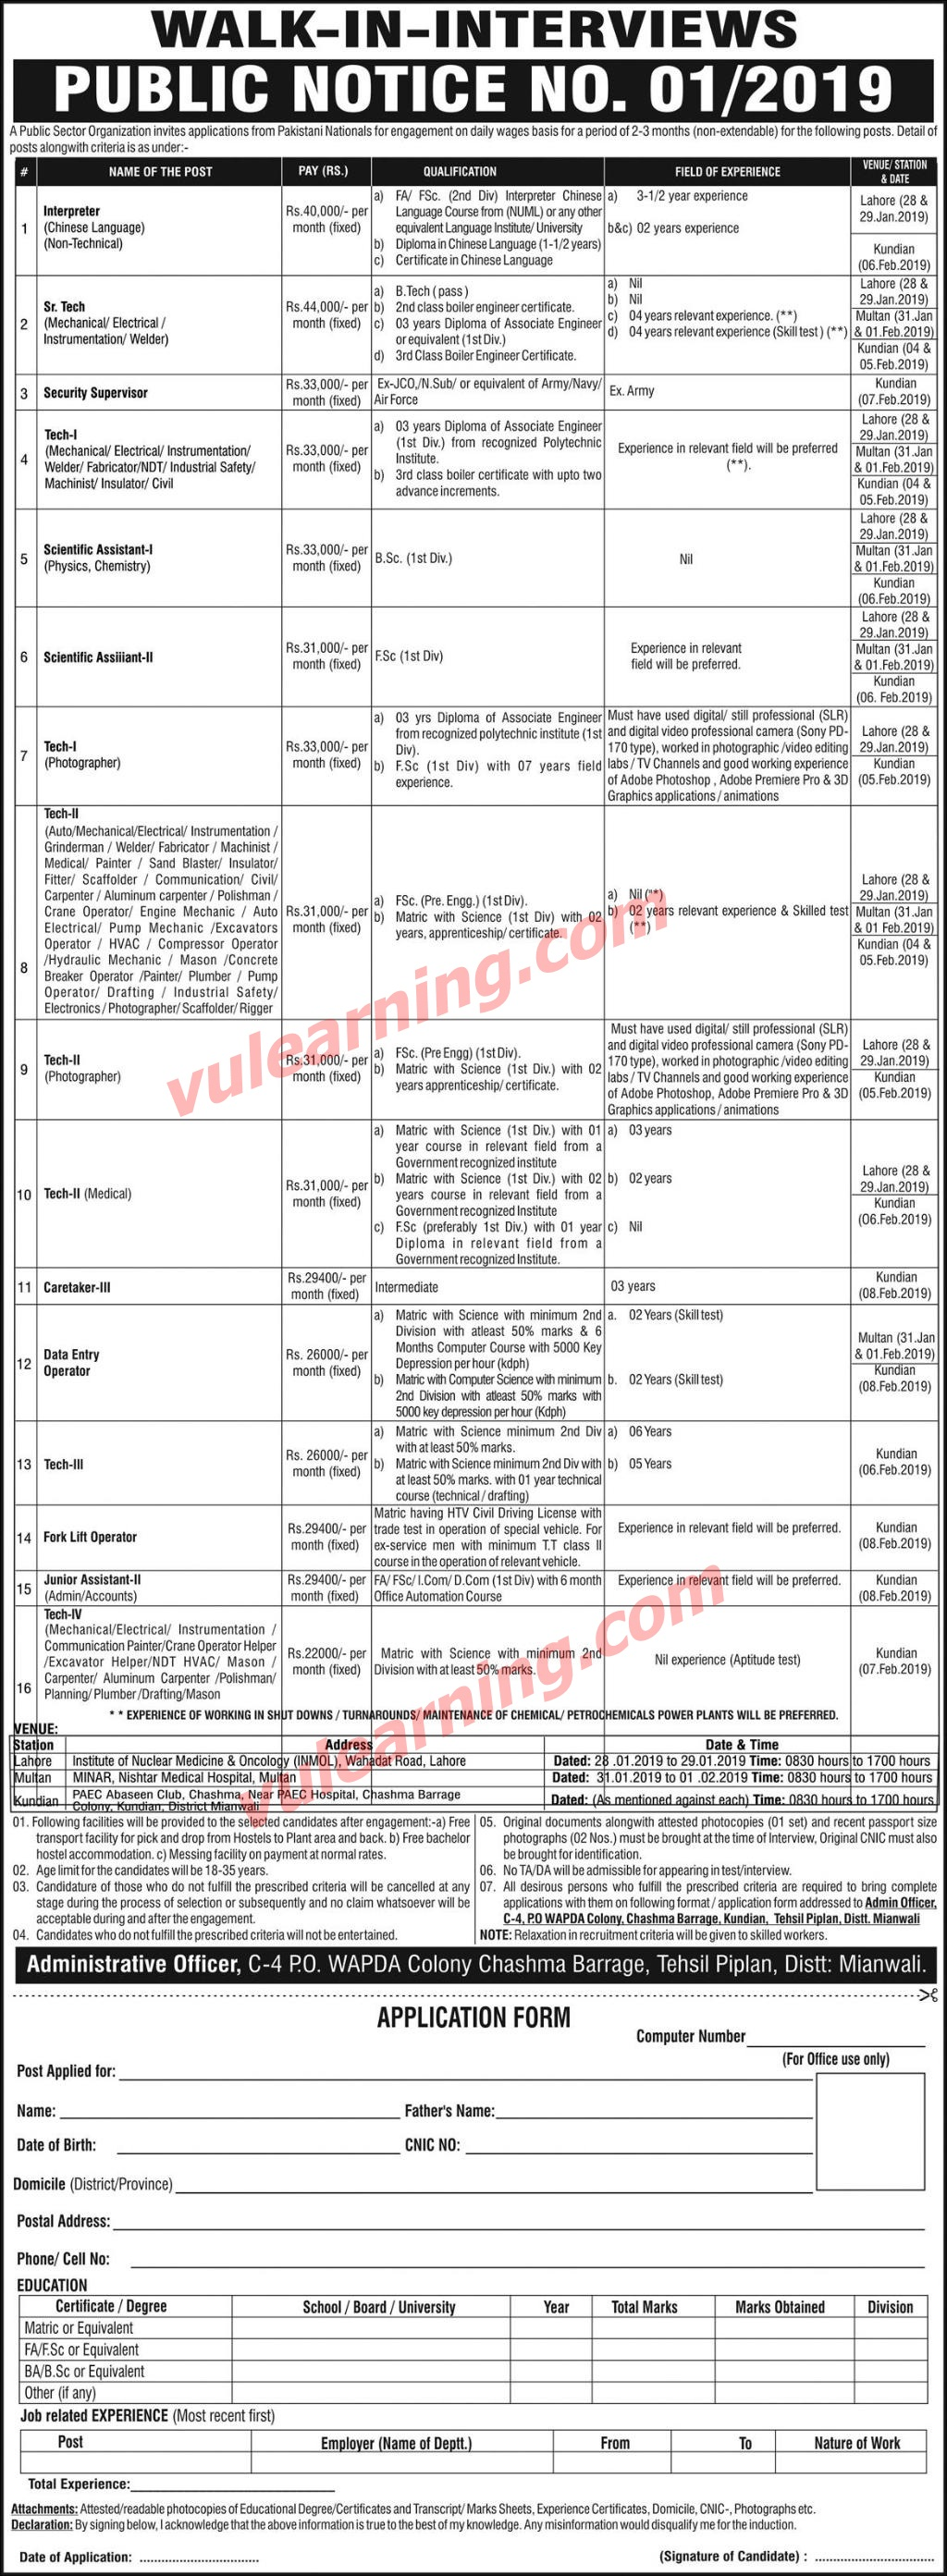 PAEC Mianwali Jobs 2019 Application Form Download C-4 PO